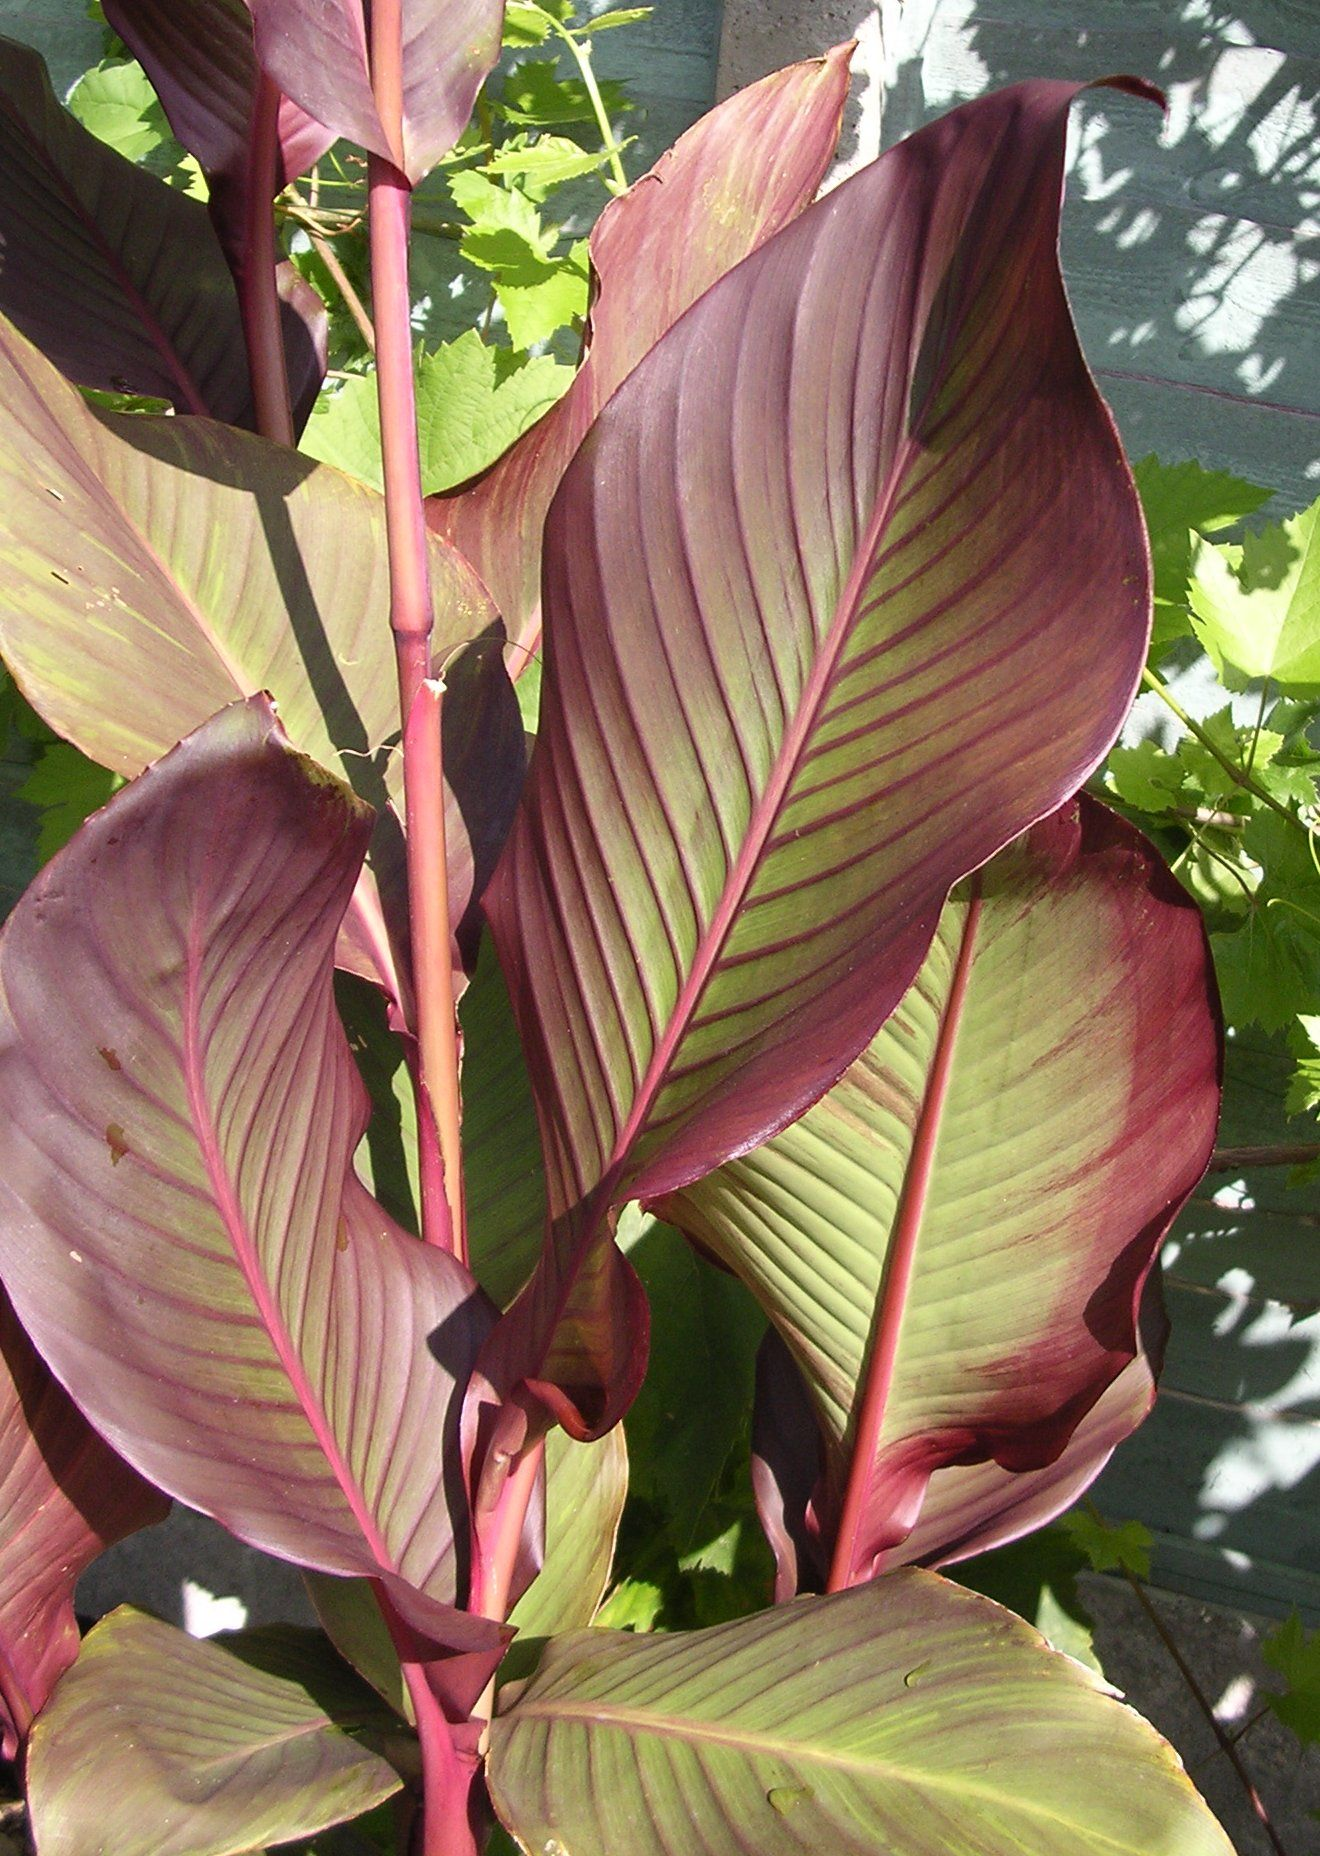 81c01a650b2 Canna 'Auguste Ferrier' with colorful foliage   .Our amazing world ...